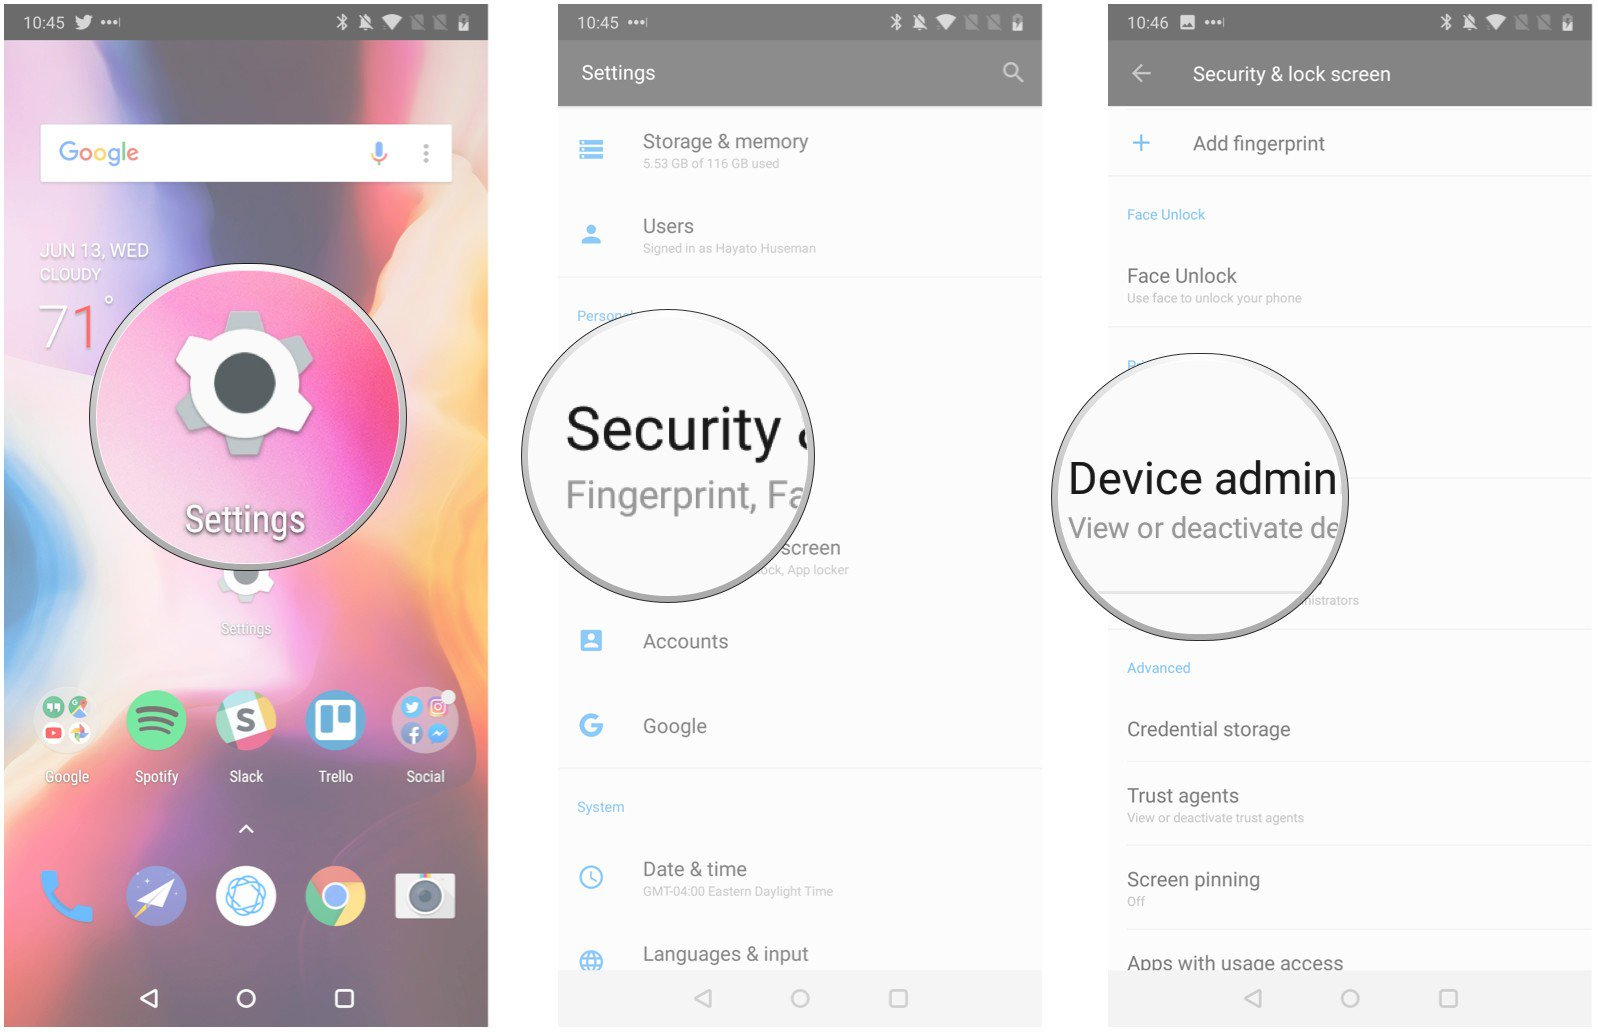 How To Find Your Stolen/Lost Phone Using Google (Guides)